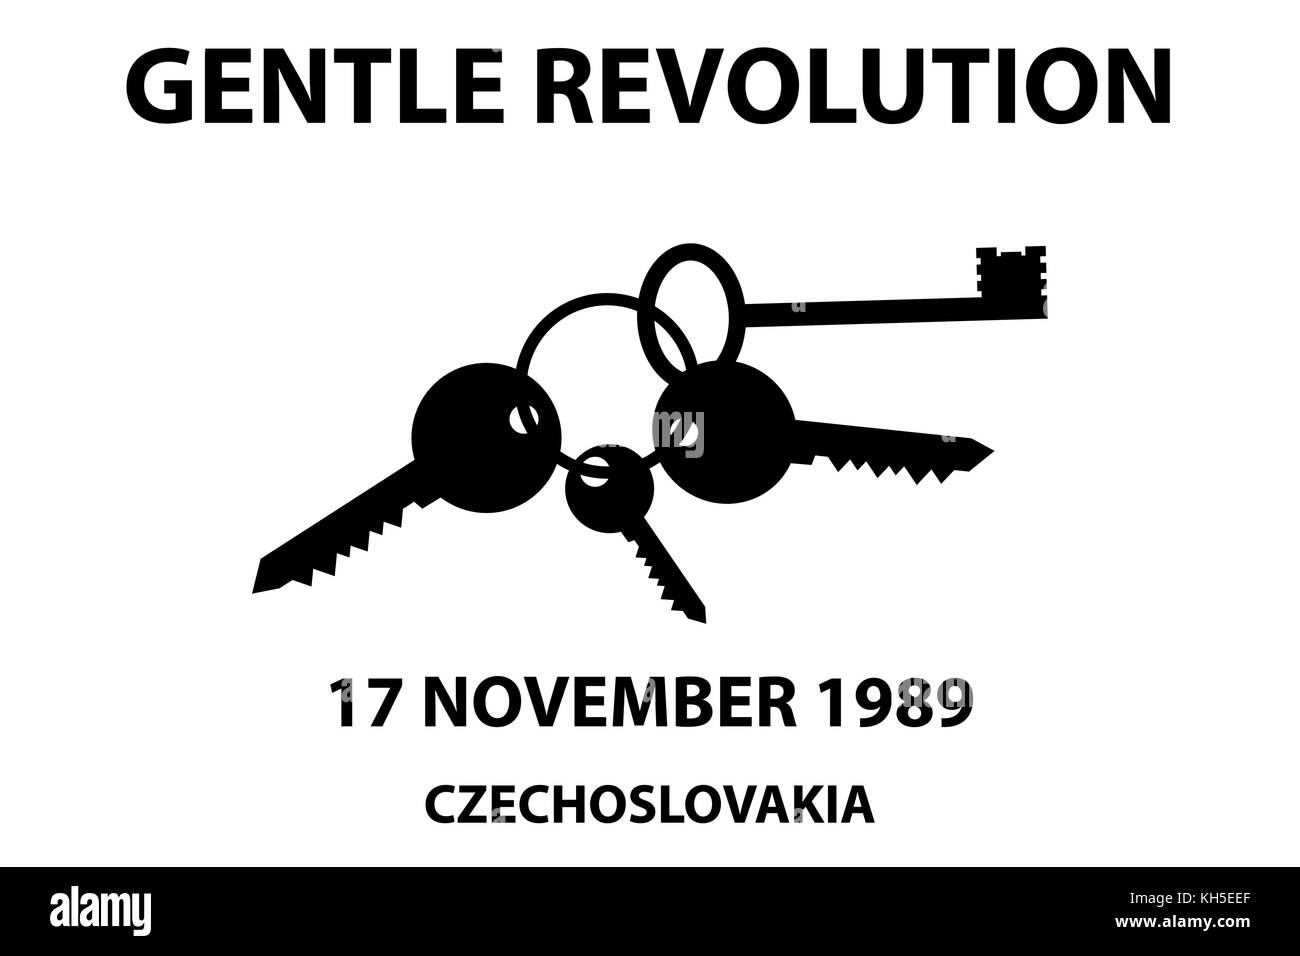 Clinking keys - gentle revolution symbol - 17 november 1989 - Stock Vector